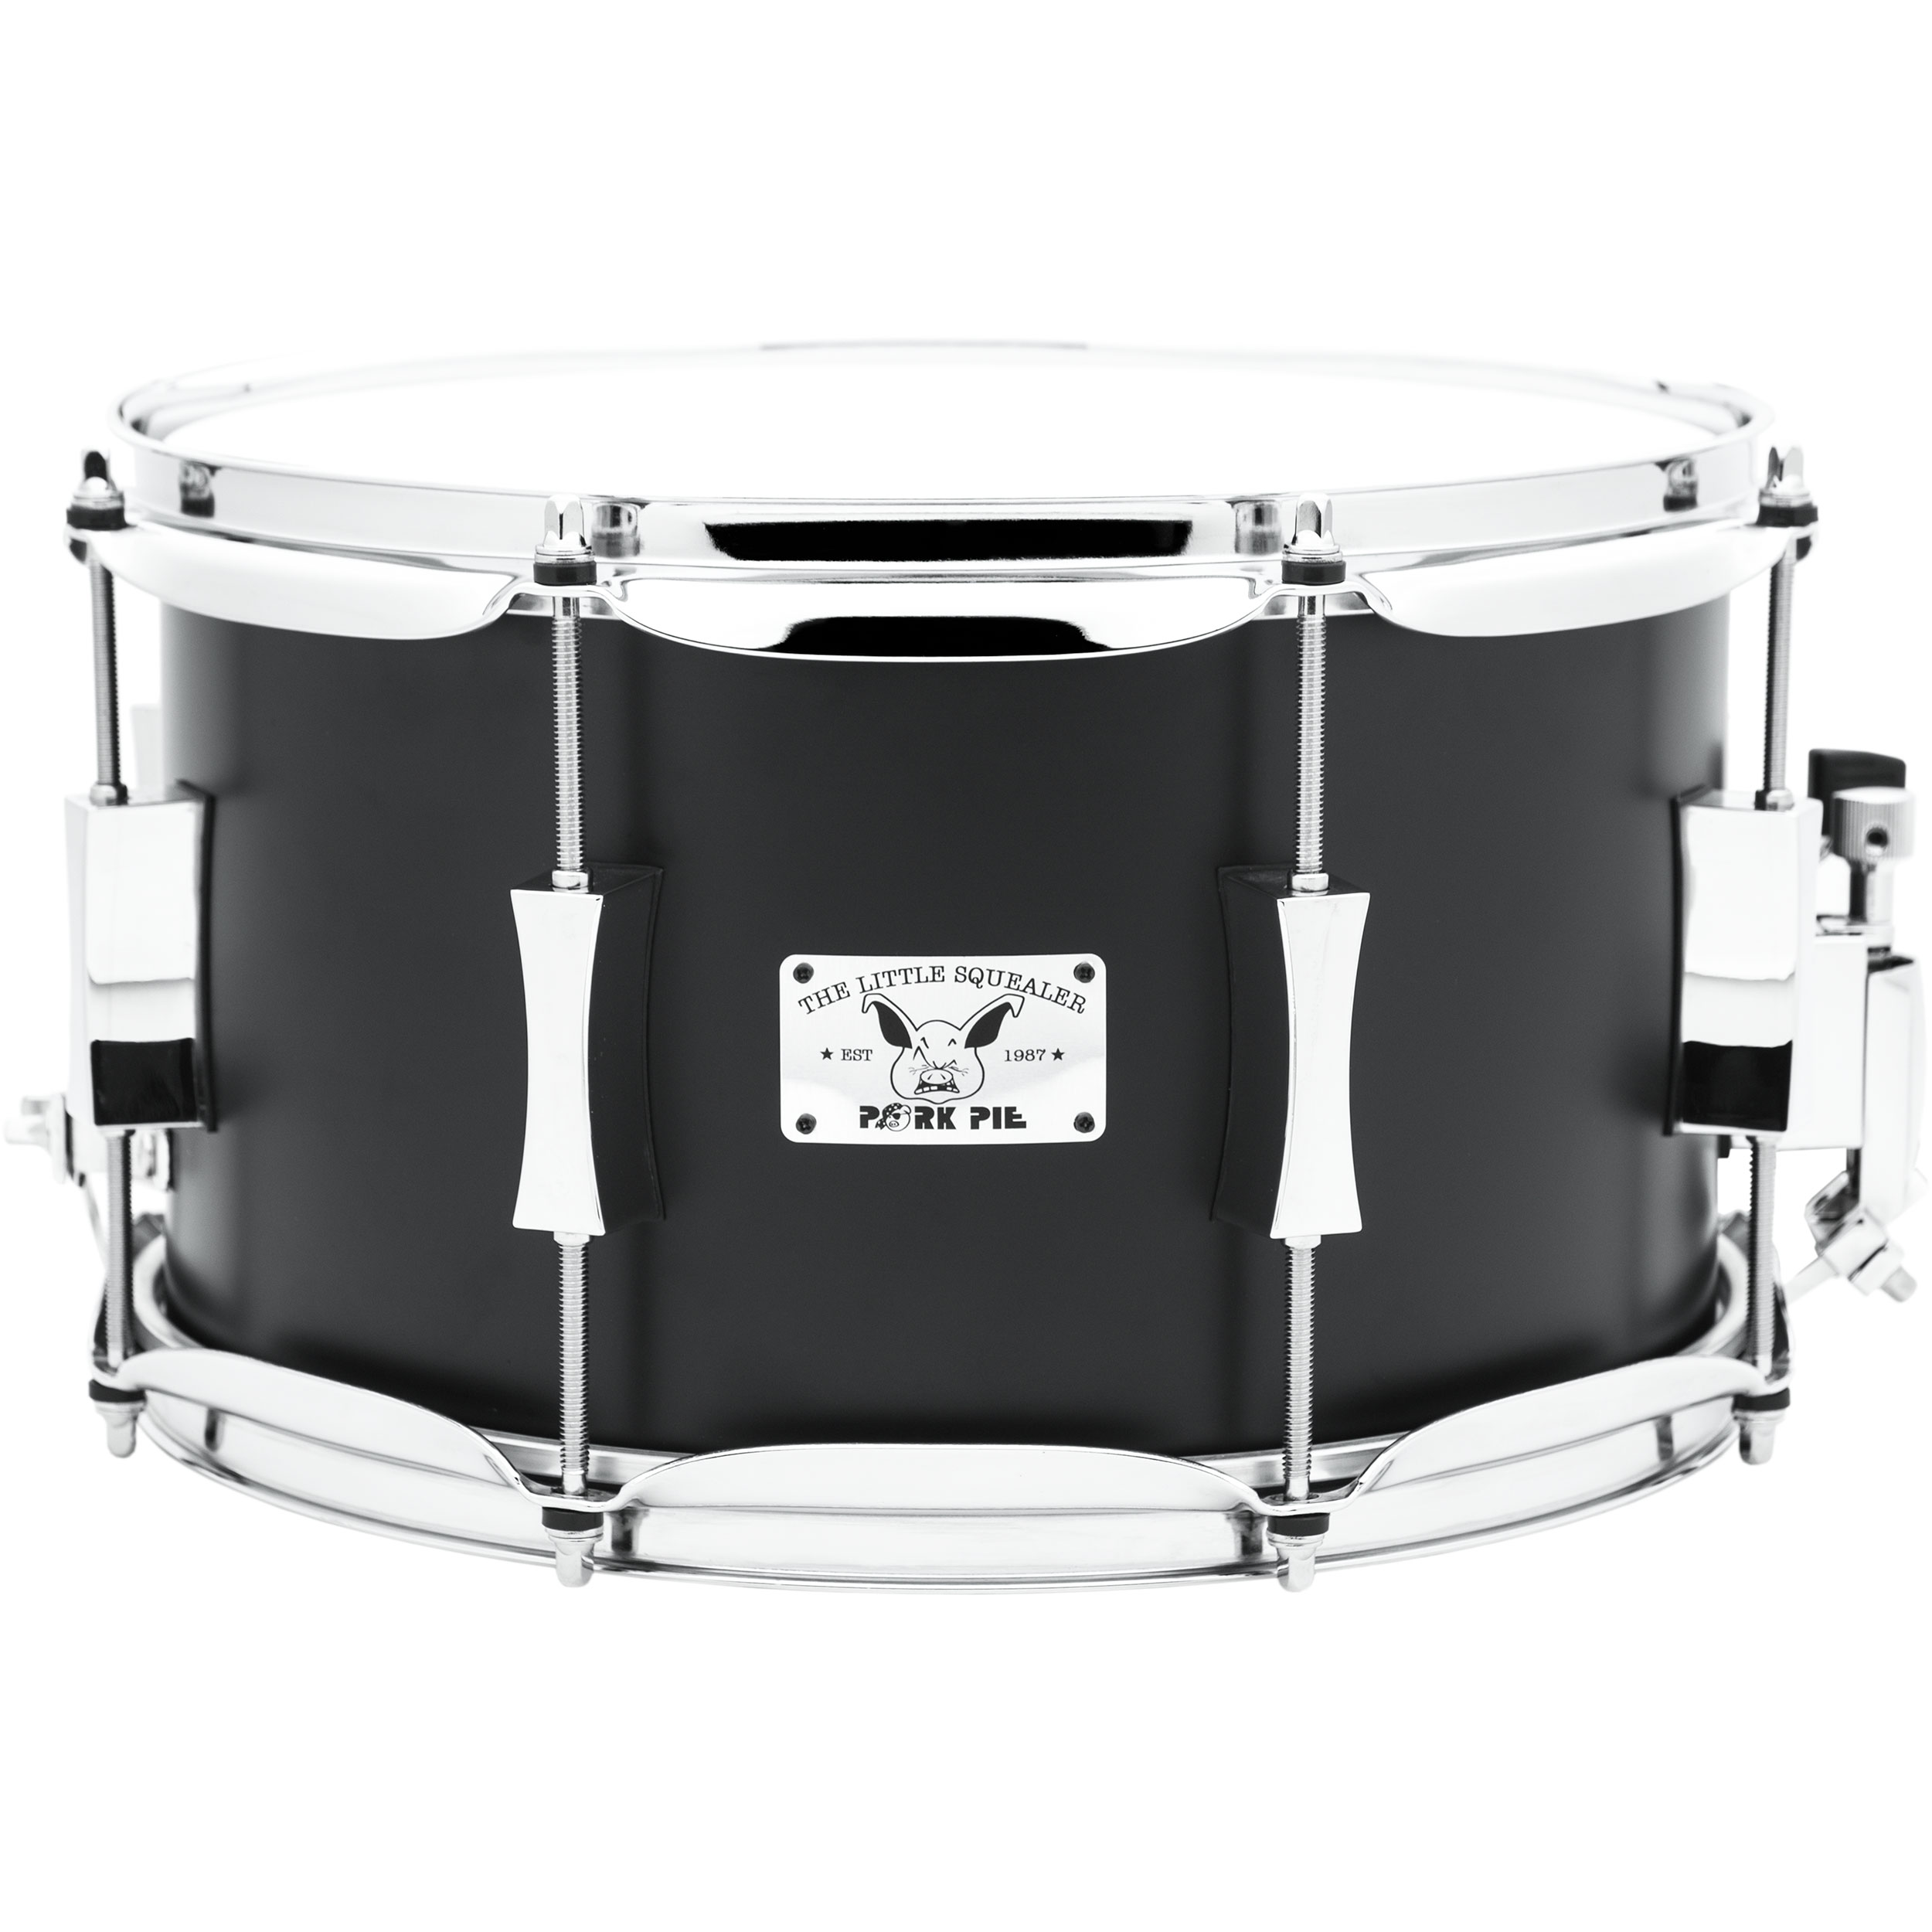 "Pork Pie Percussion 7"" x 12"" Little Squealer Maple/Birch Snare Drum in Flat Black"